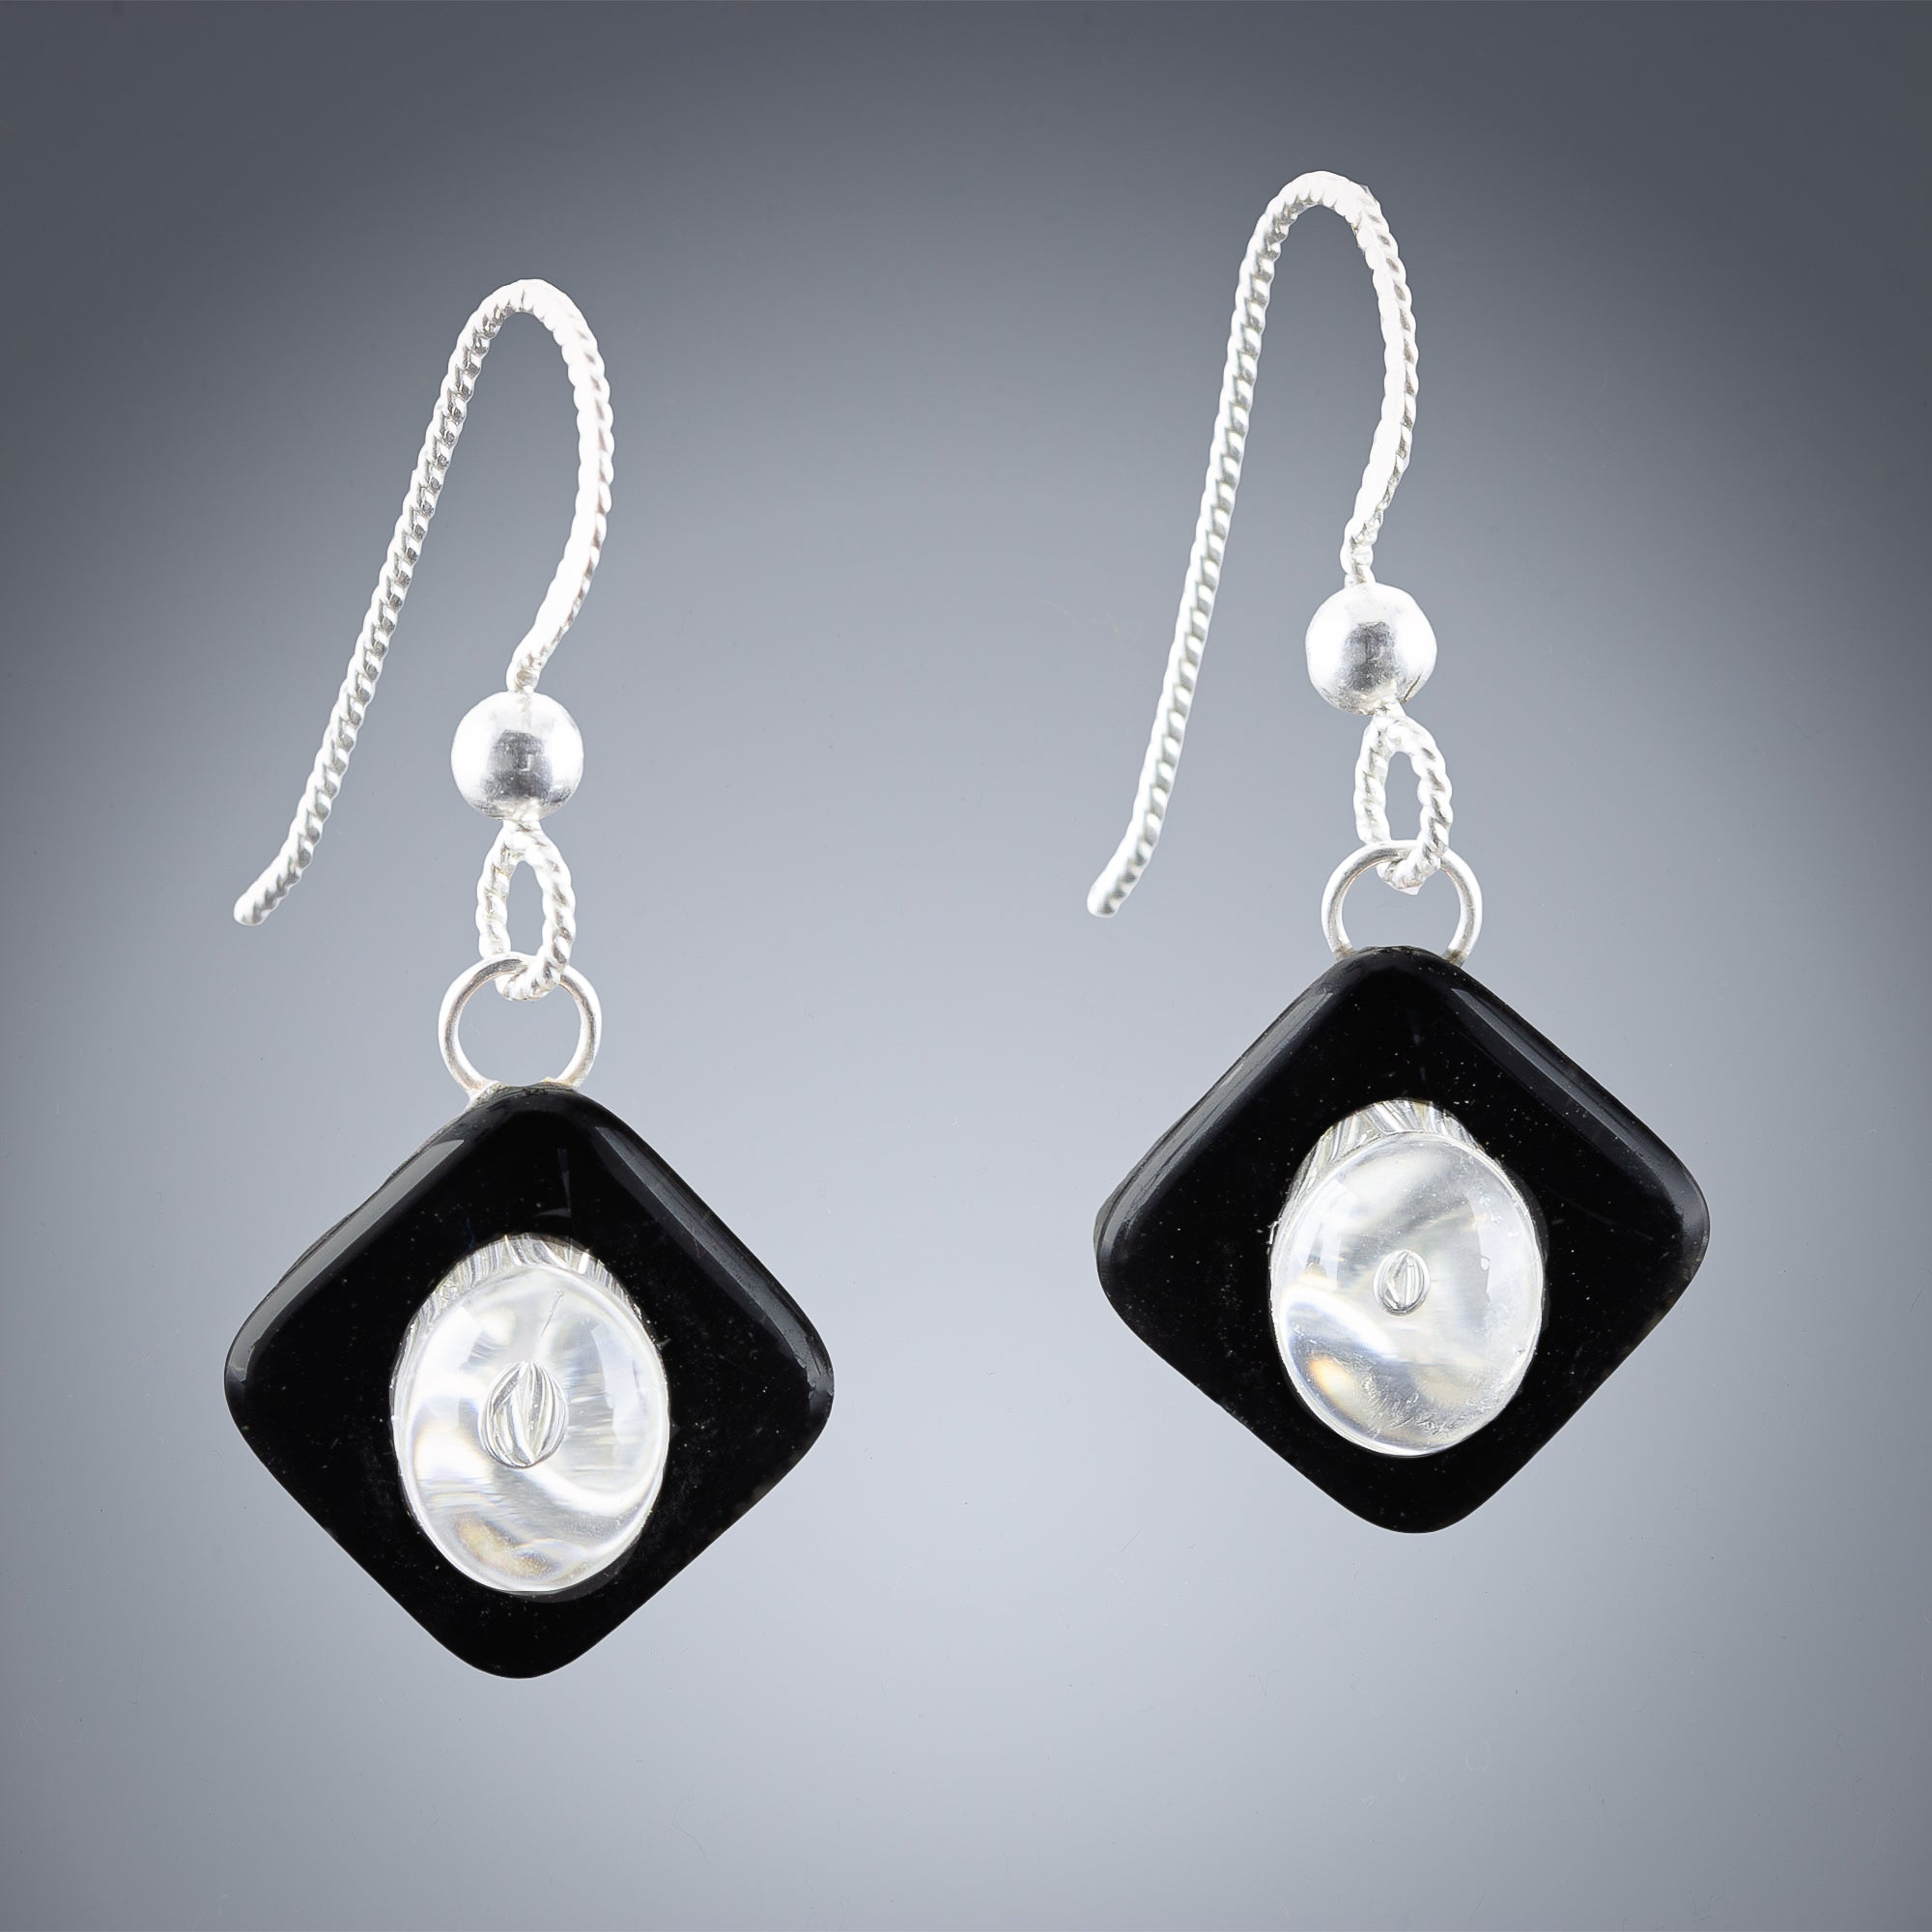 Handwoven Silver and Black Enamel Diamond Shape Dangle Earrings in Sterling Silver